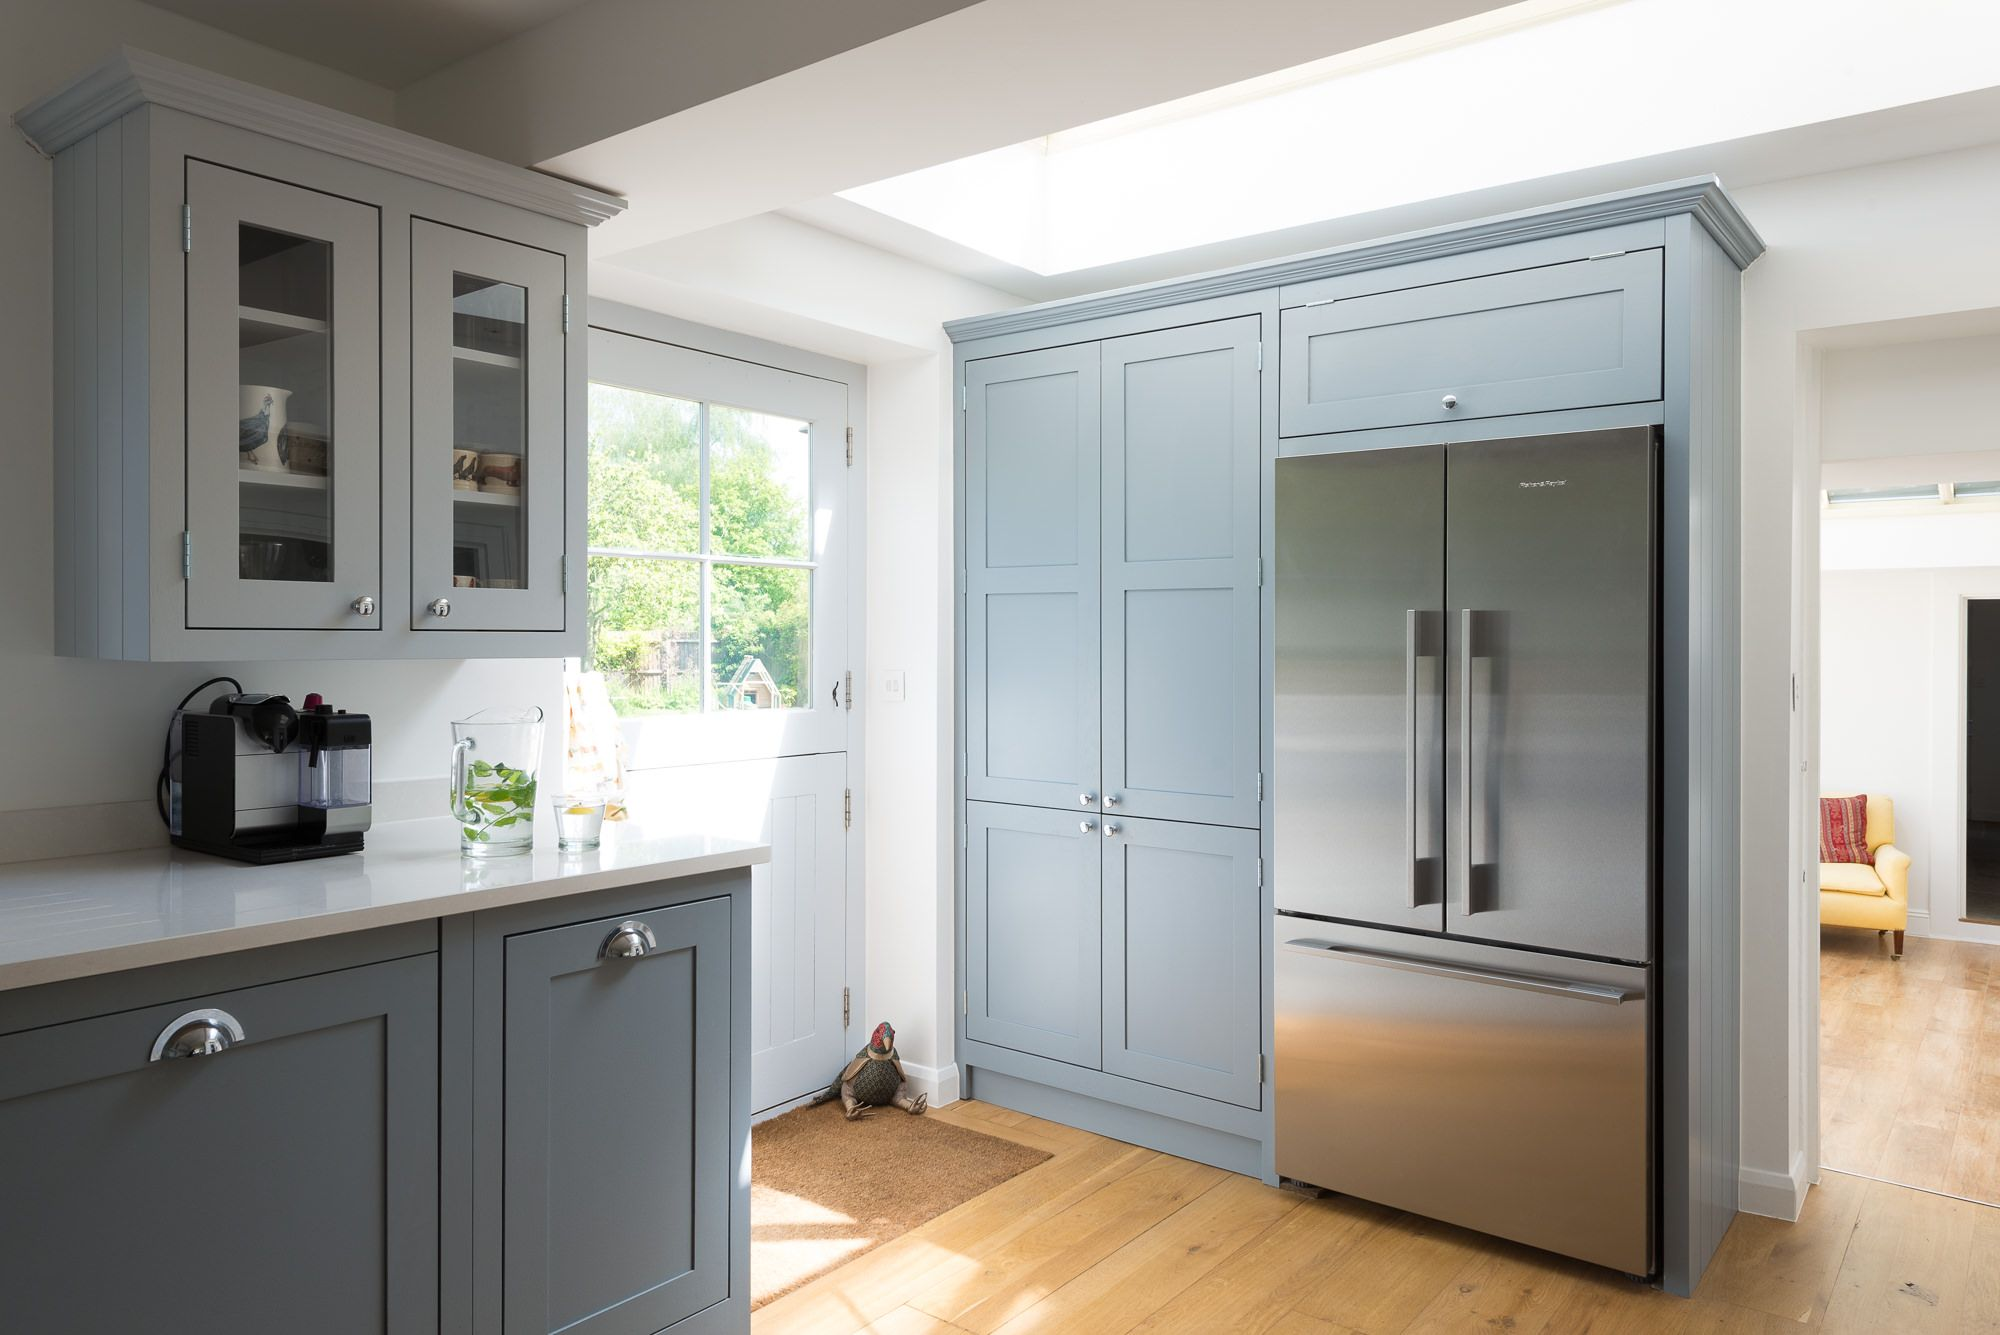 This pretty kitchen is hand painted in pale blue and white